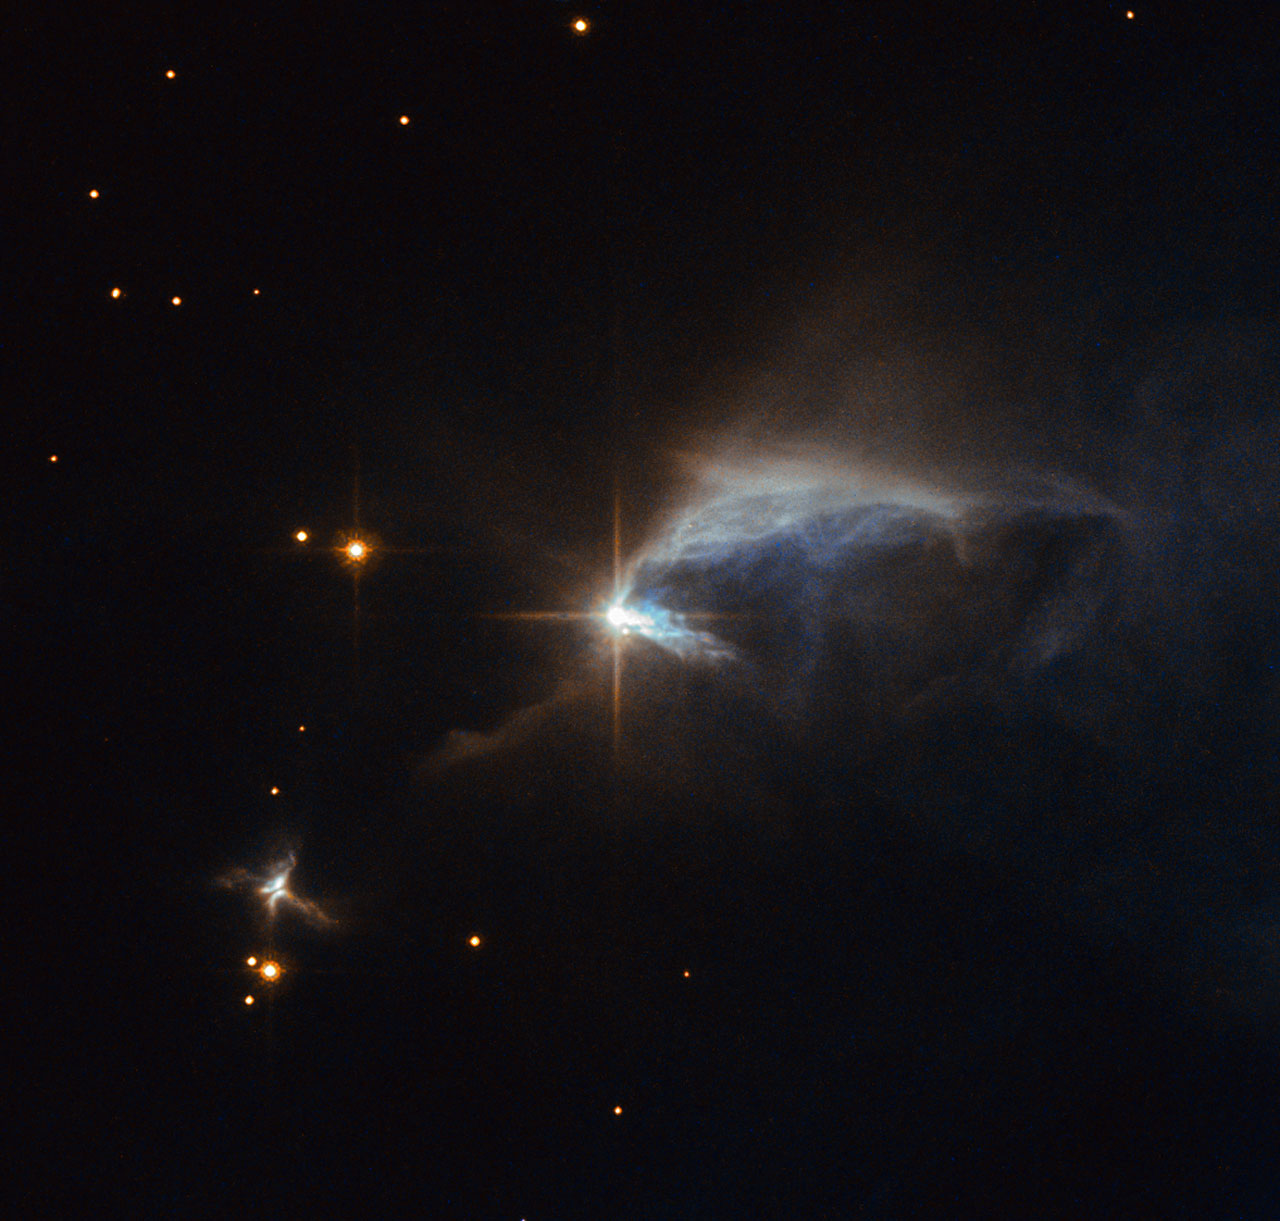 hubble space telescope star 2 - photo #9